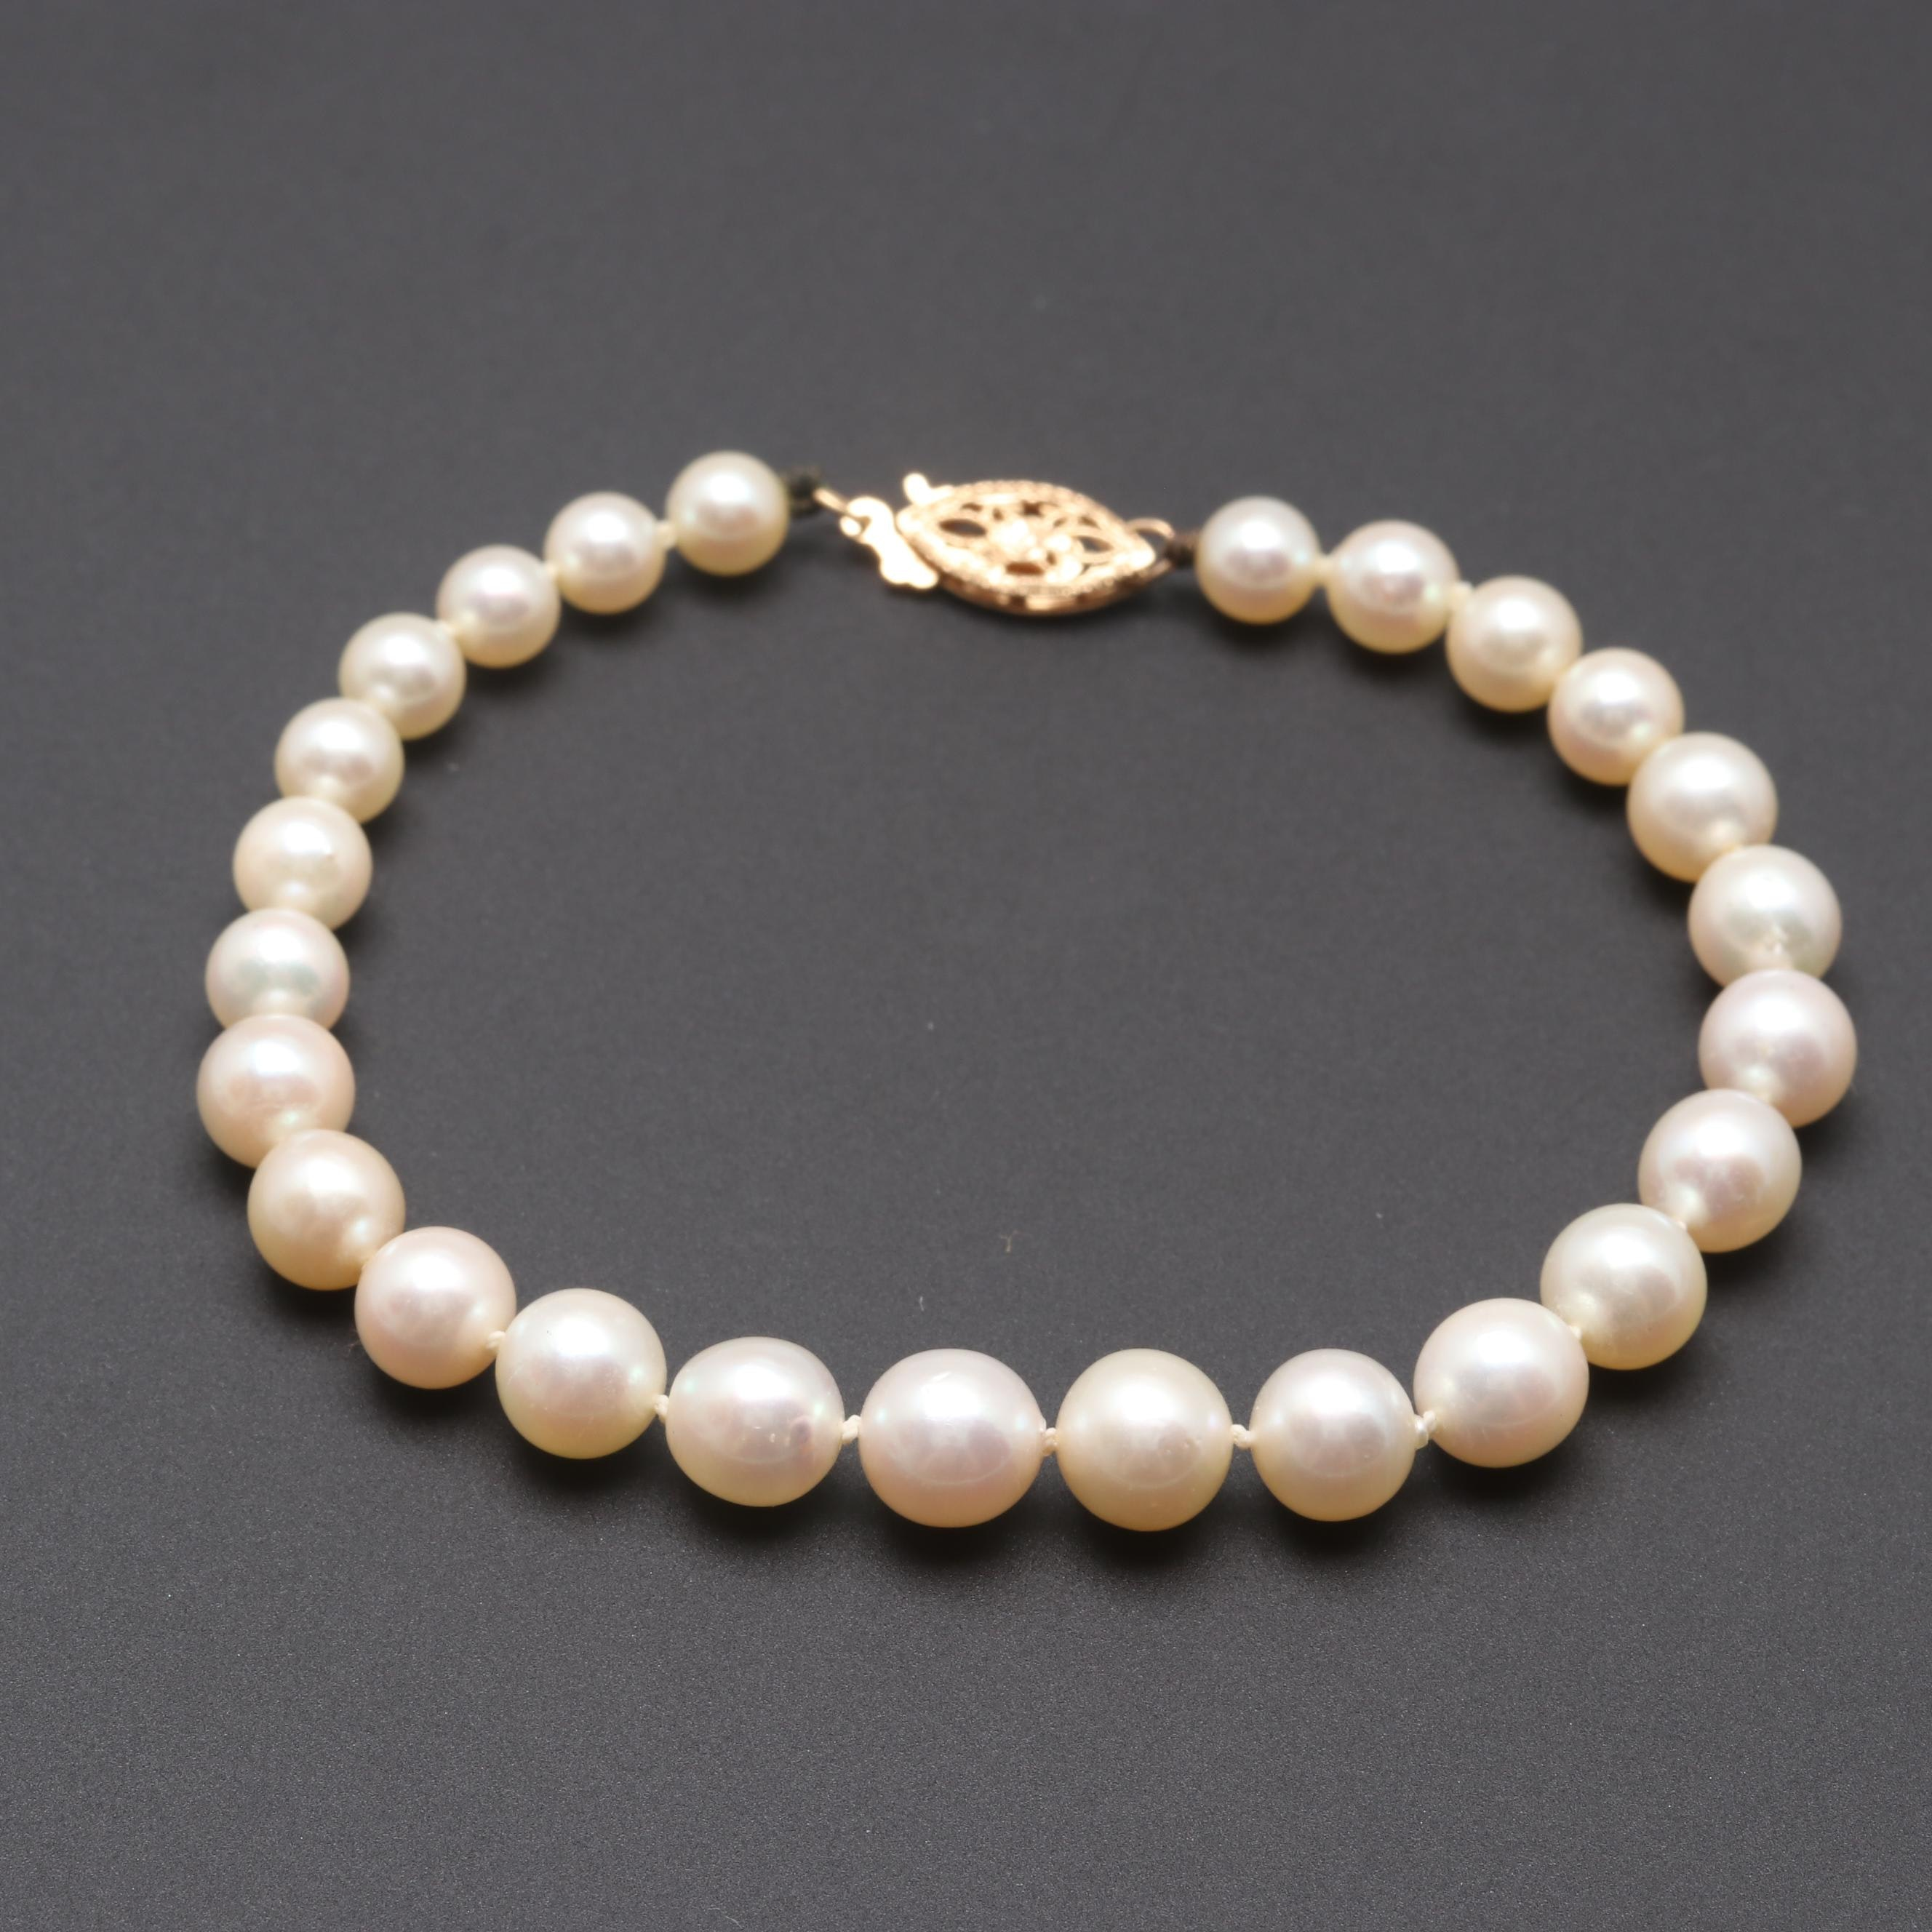 14K Yellow Gold Cultured Pearl Beaded Bracelet